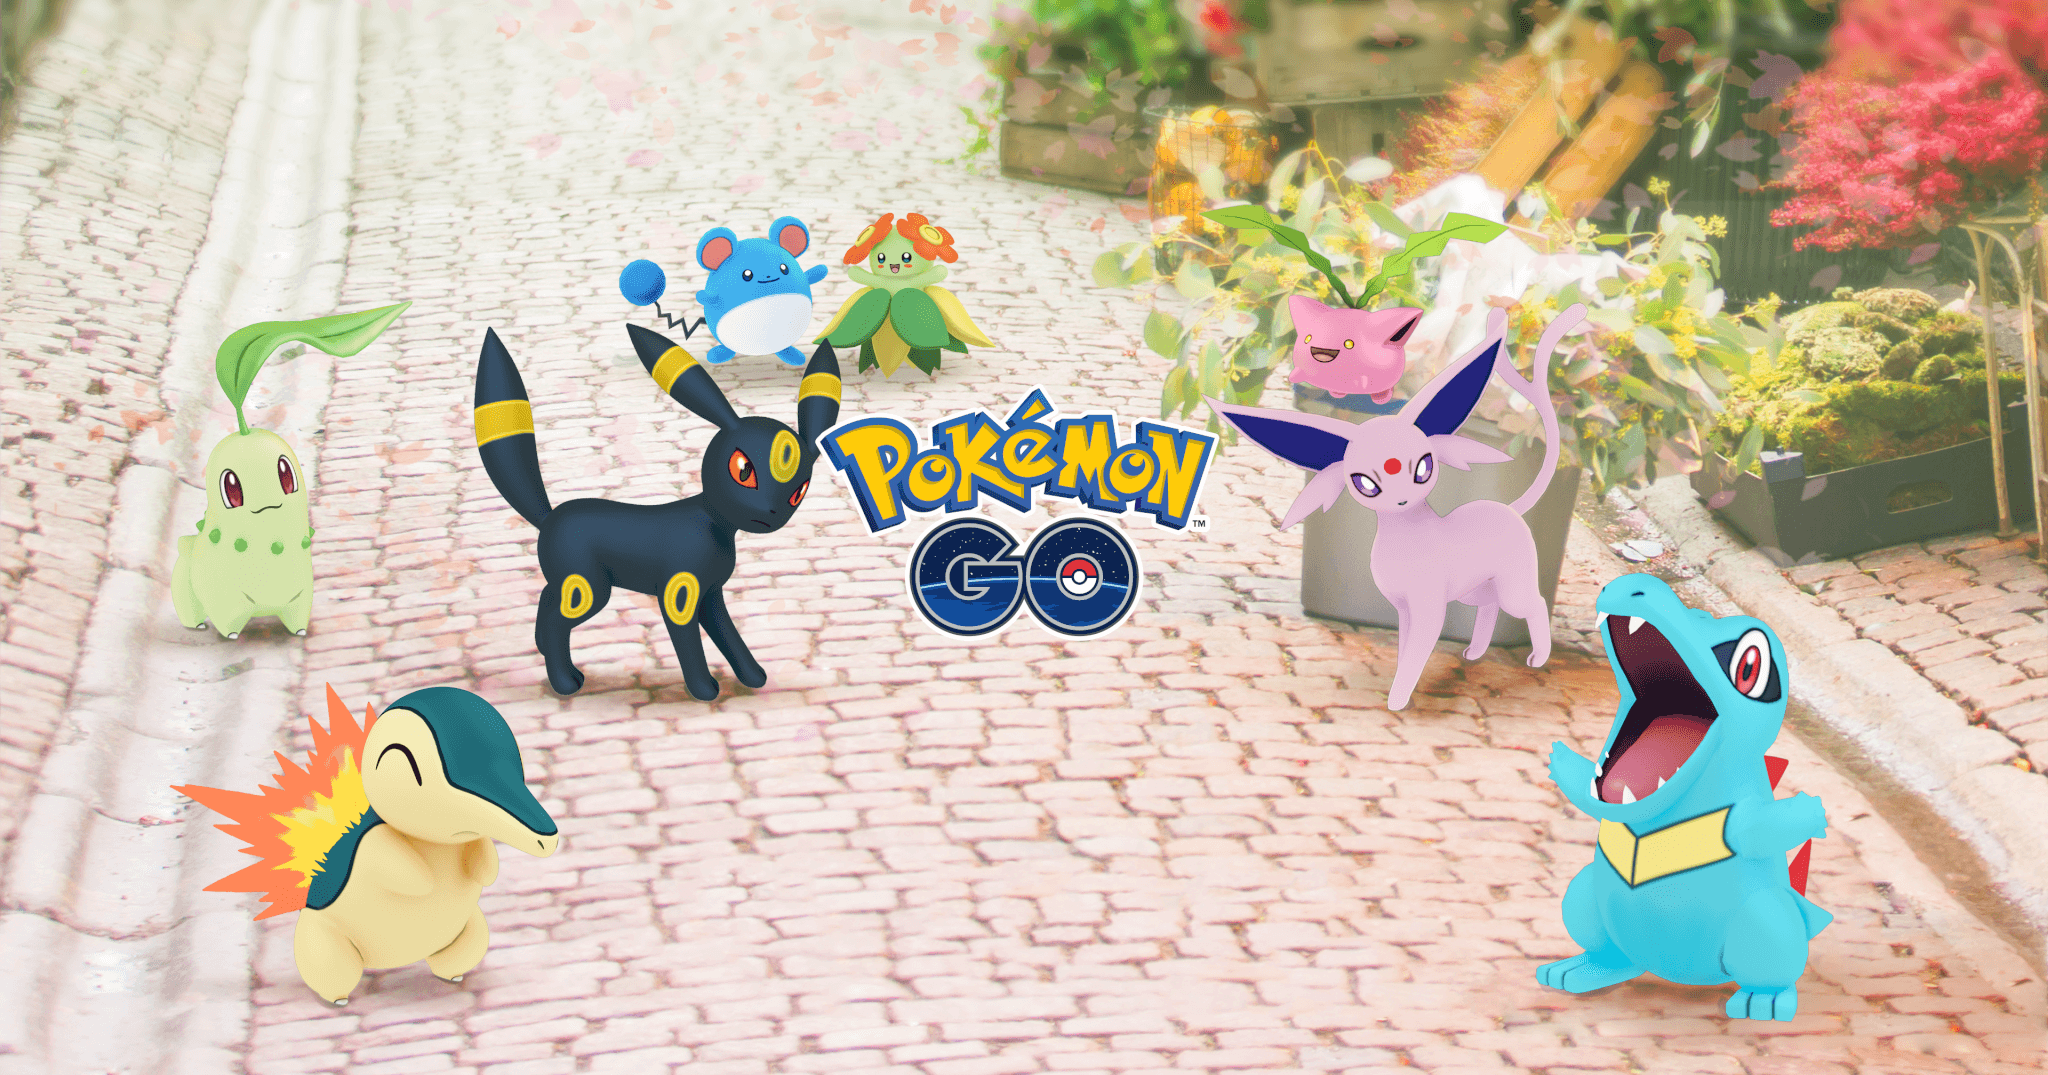 Pokémon Go isn't far from its first anniversary, and it's finally getting a new batch of non-egg pocket monsters.